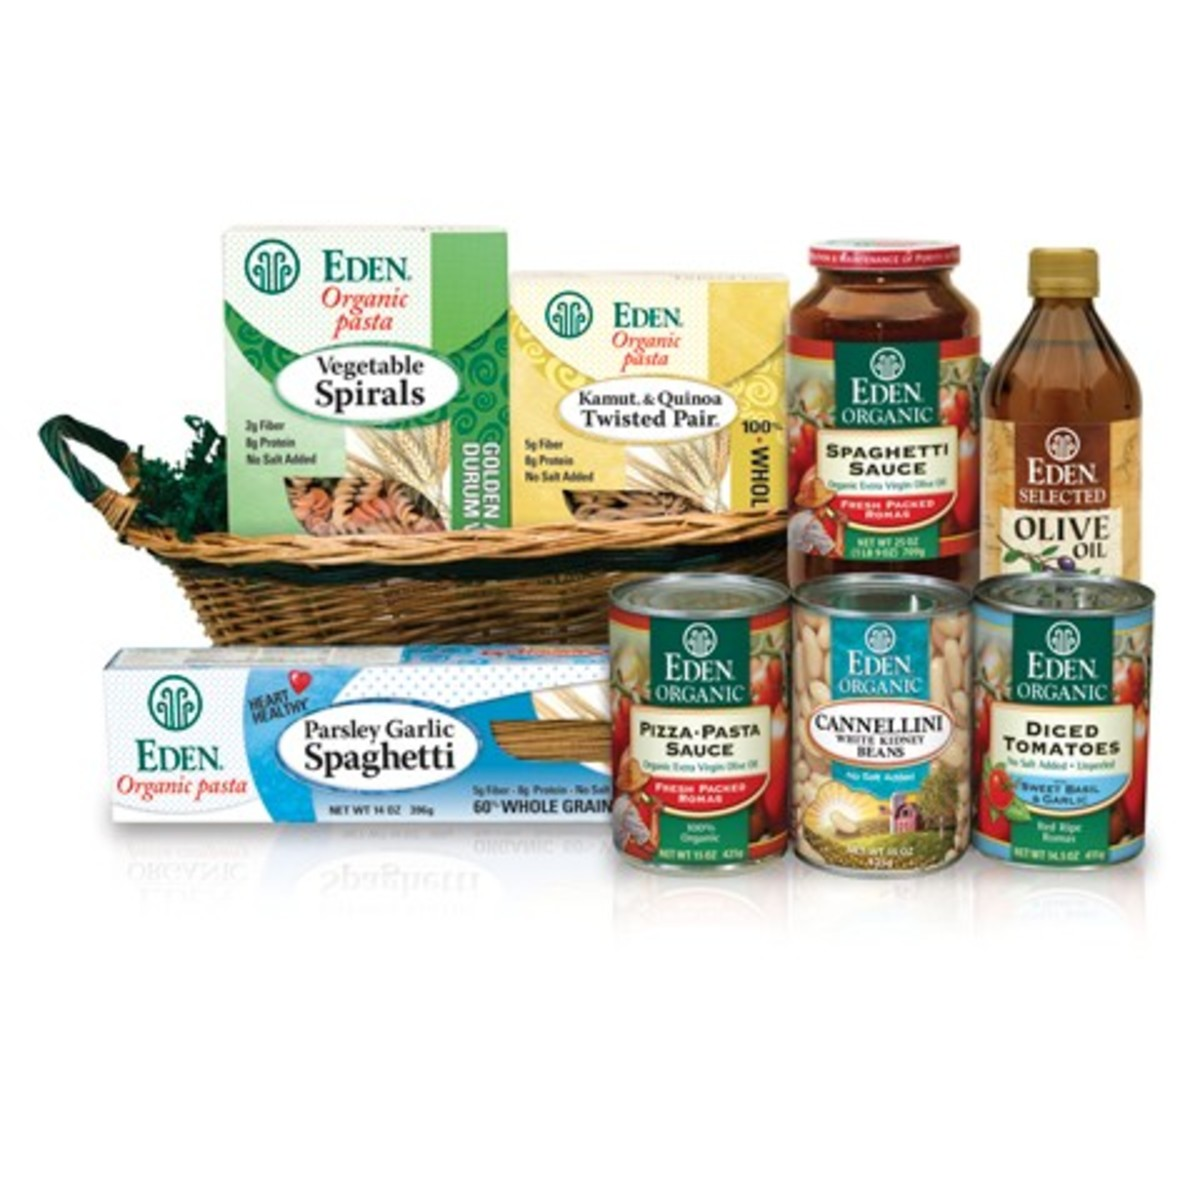 eden Food Gift basket